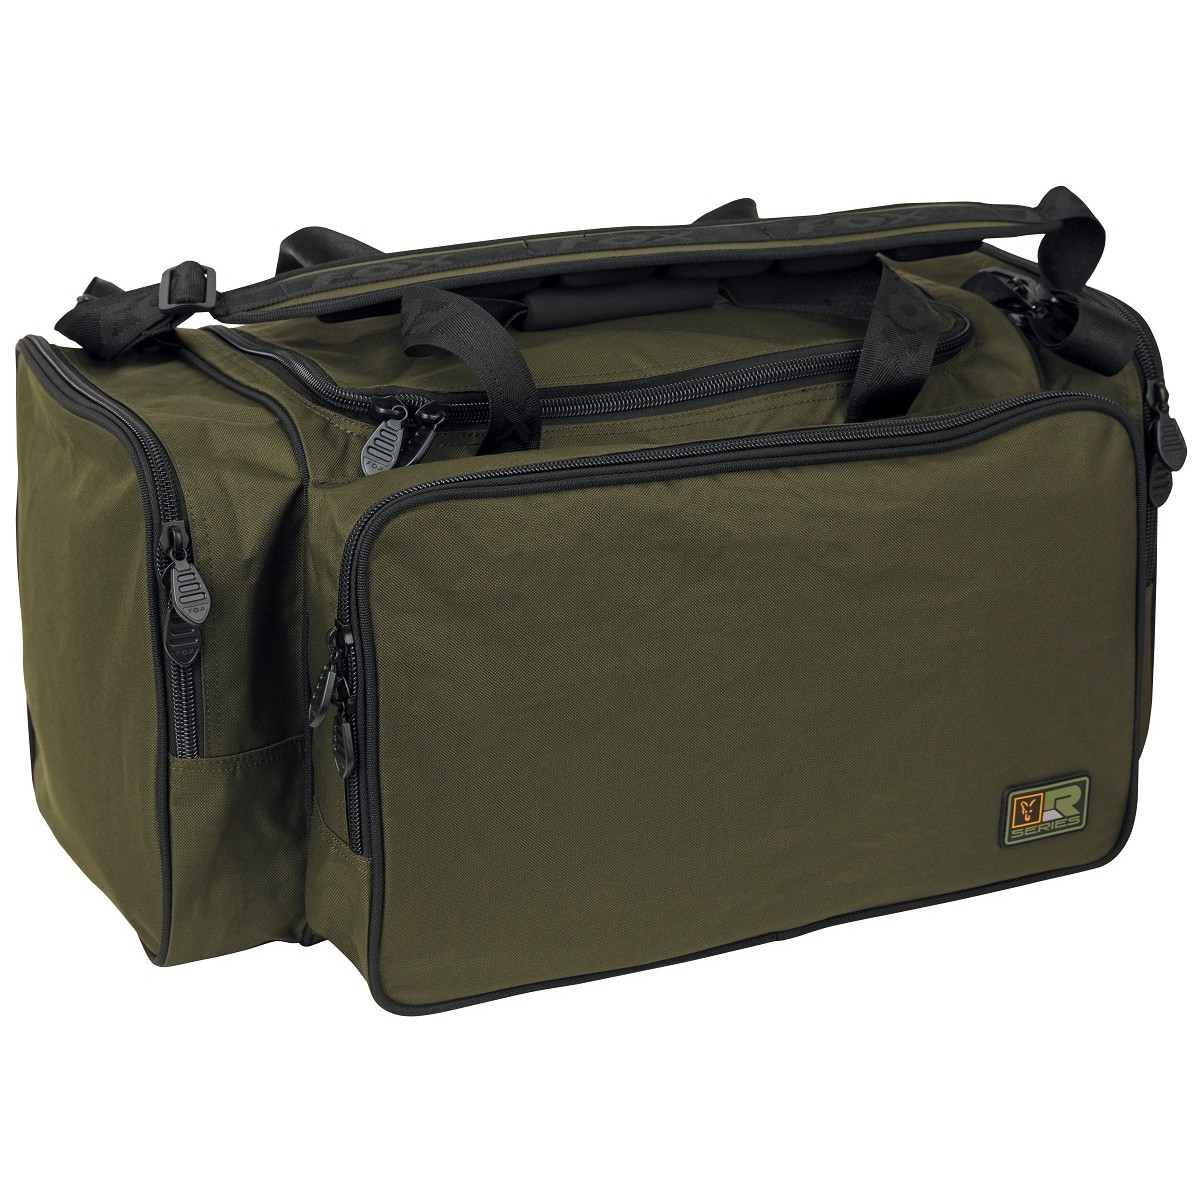 Сак рибарски FOX R-Series Carryall Large